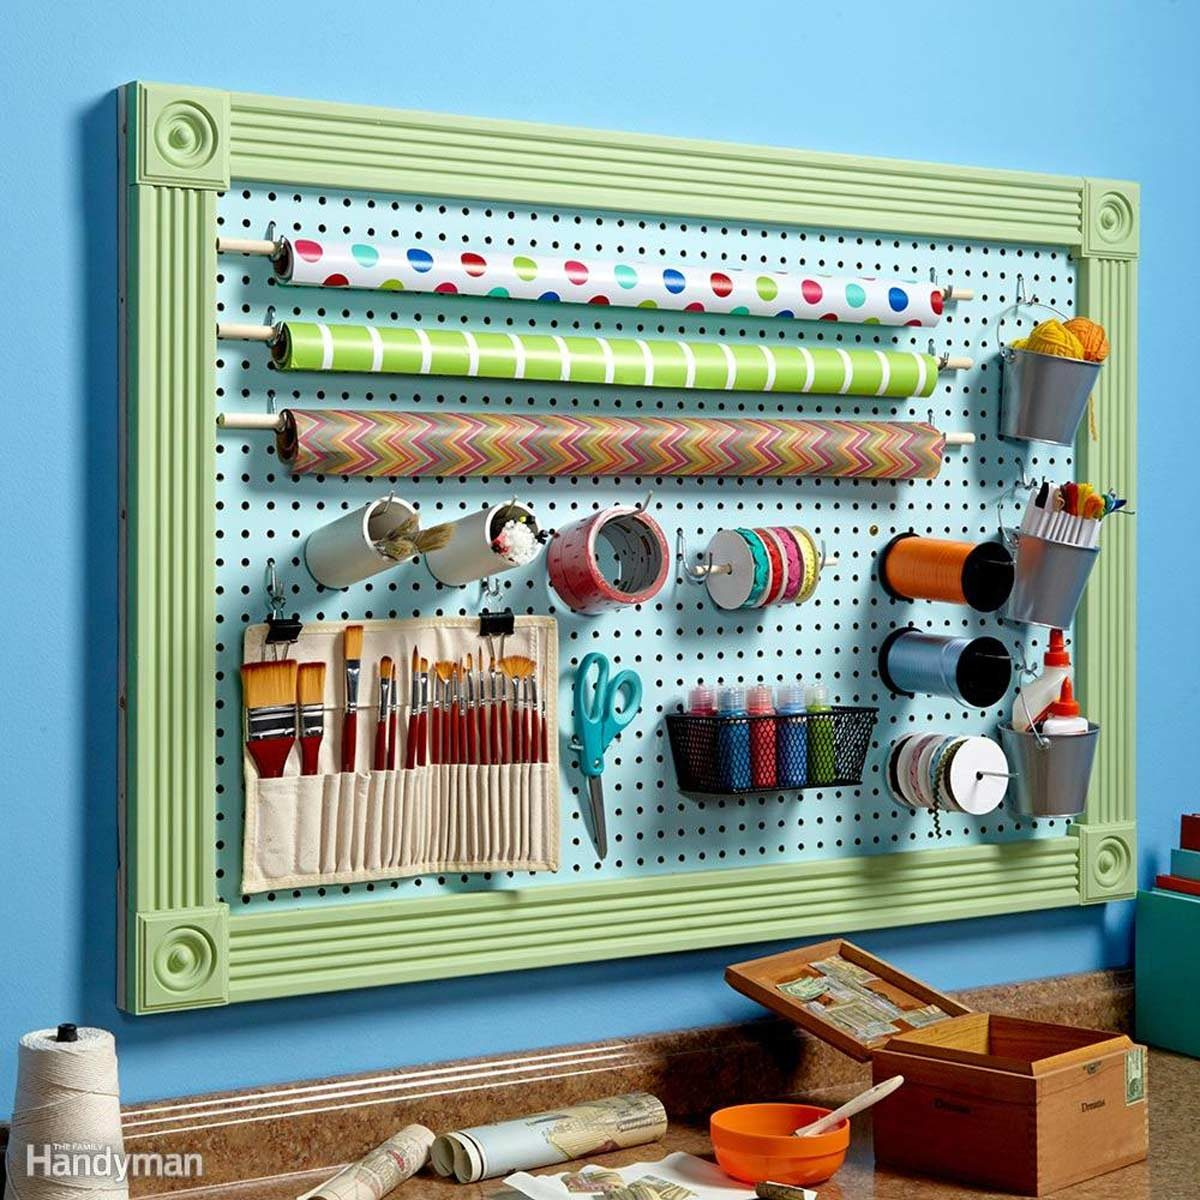 Add a Pegboard Wall